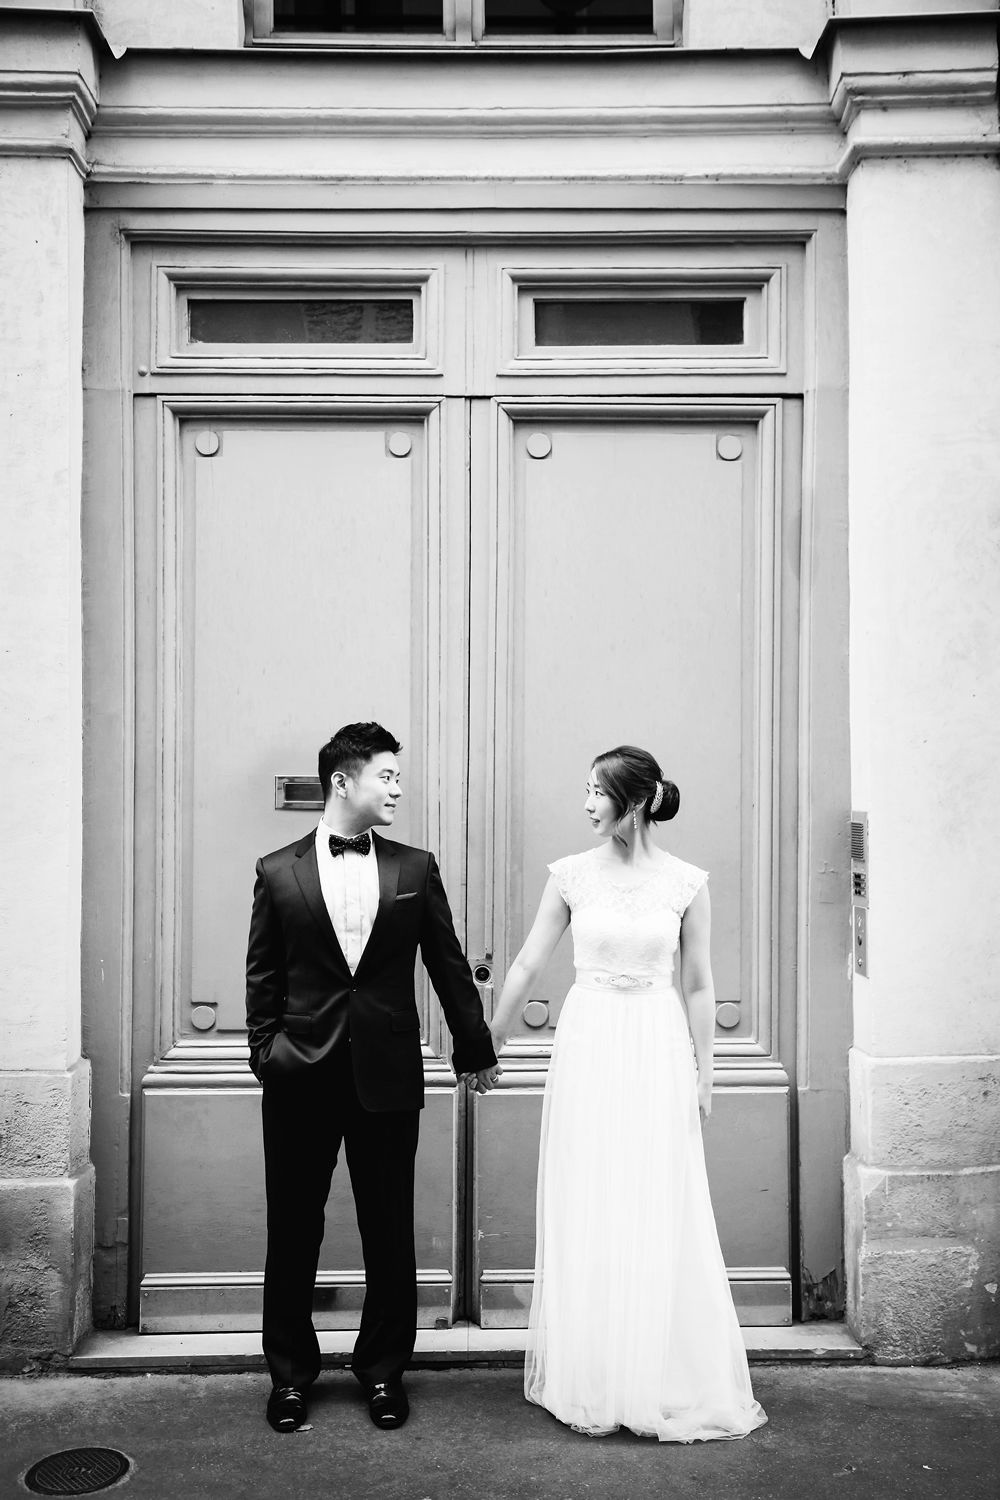 American wedding photographer in paris specializing in engagements